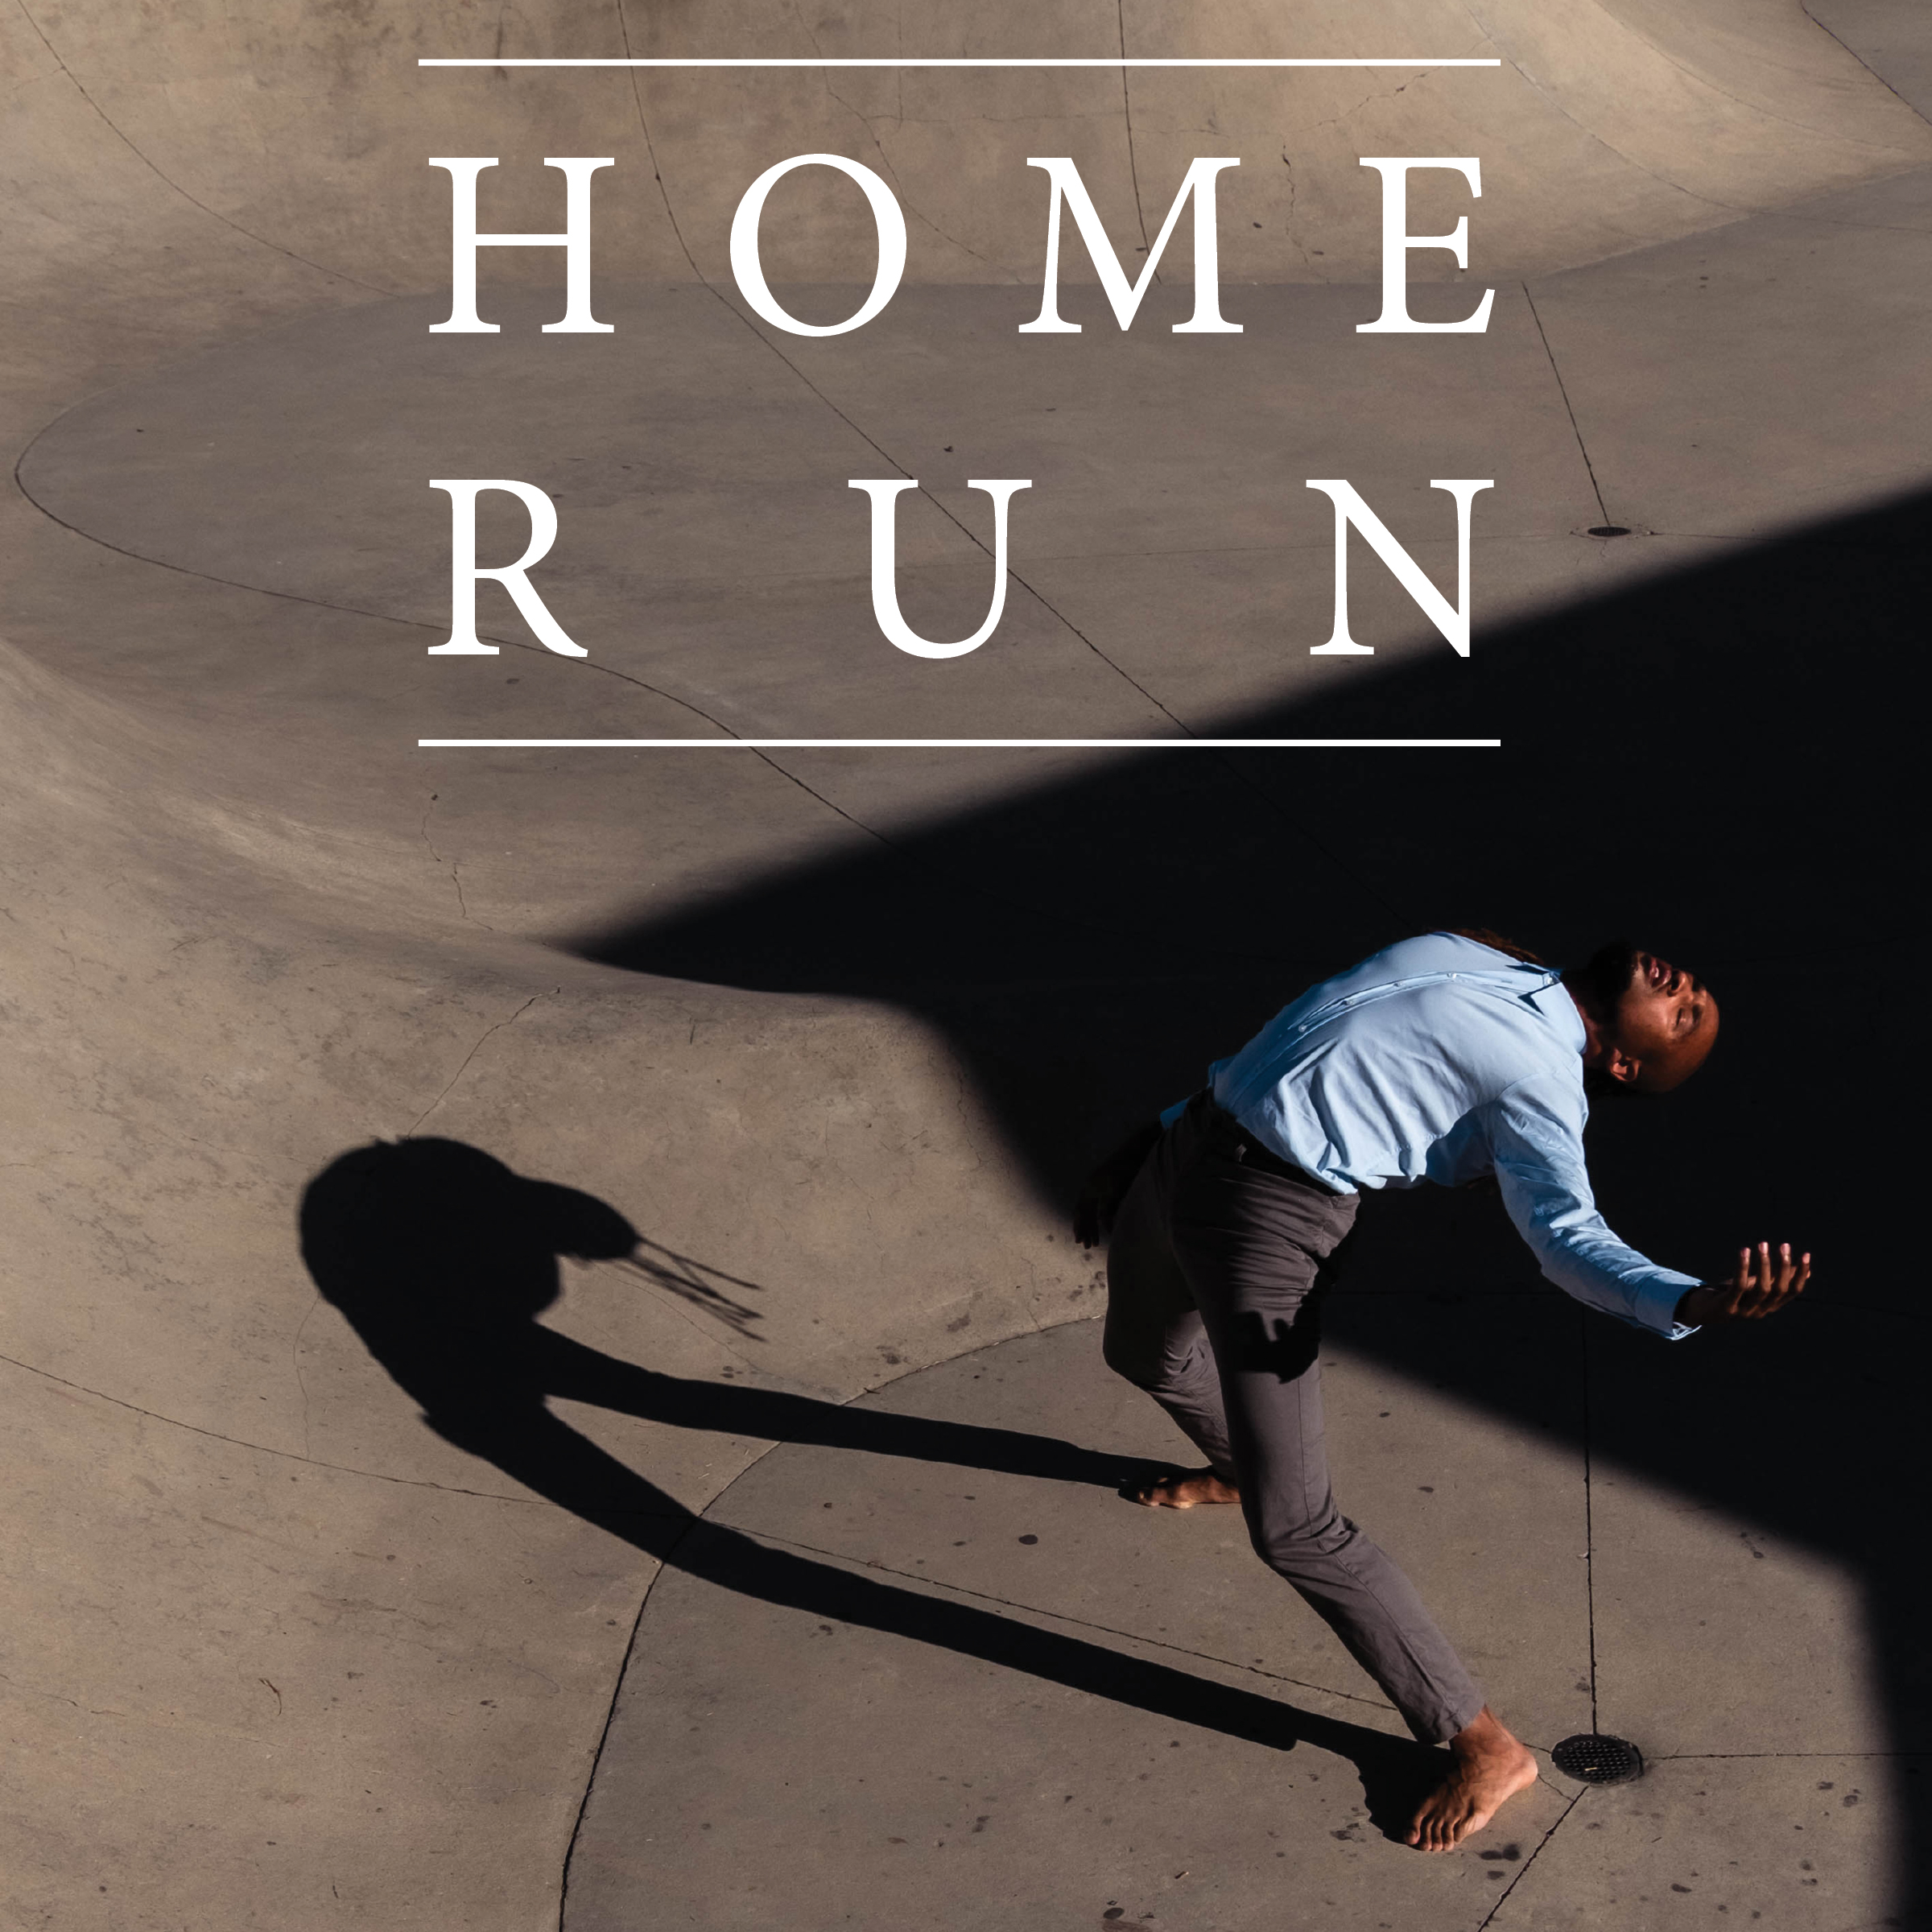 HOME RUN (on-demand, February 13 - March 11)